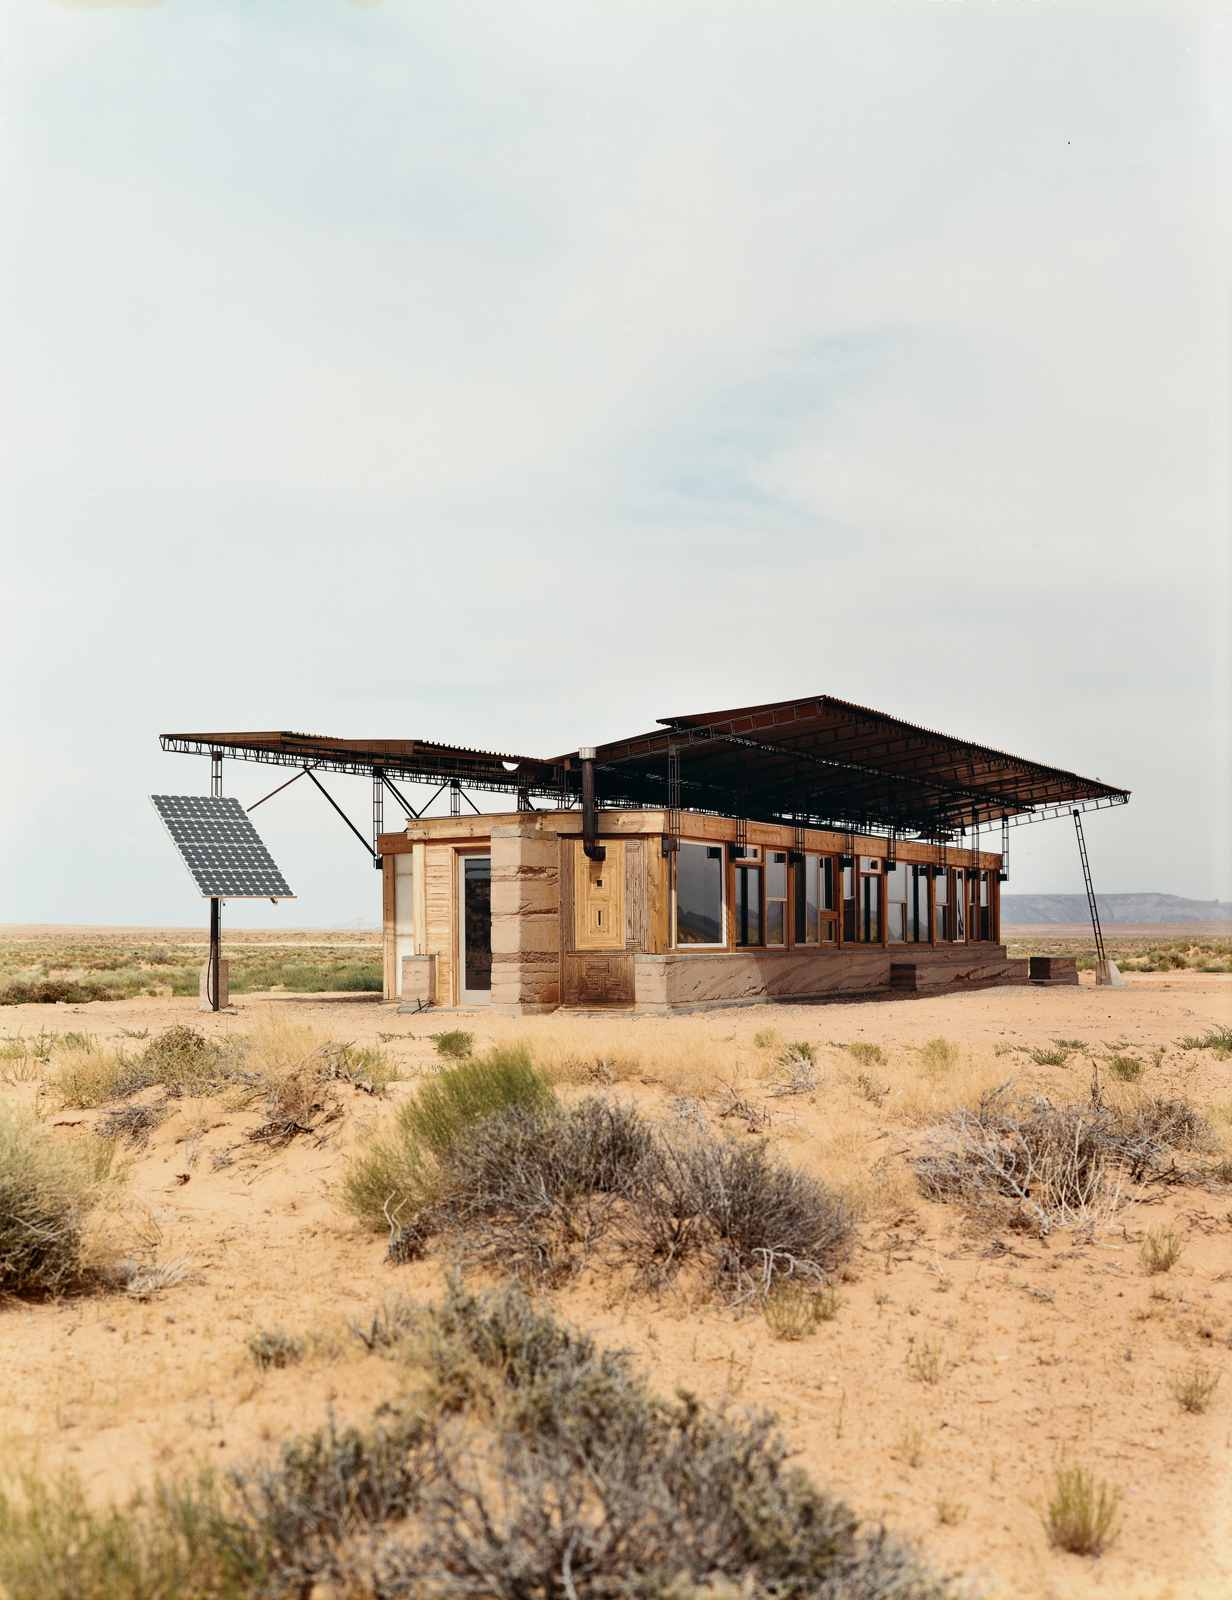 Entirely off the grid, the house is powered by four photovoltaic panels that supply electricity to lights, small appliances, and water pumps.